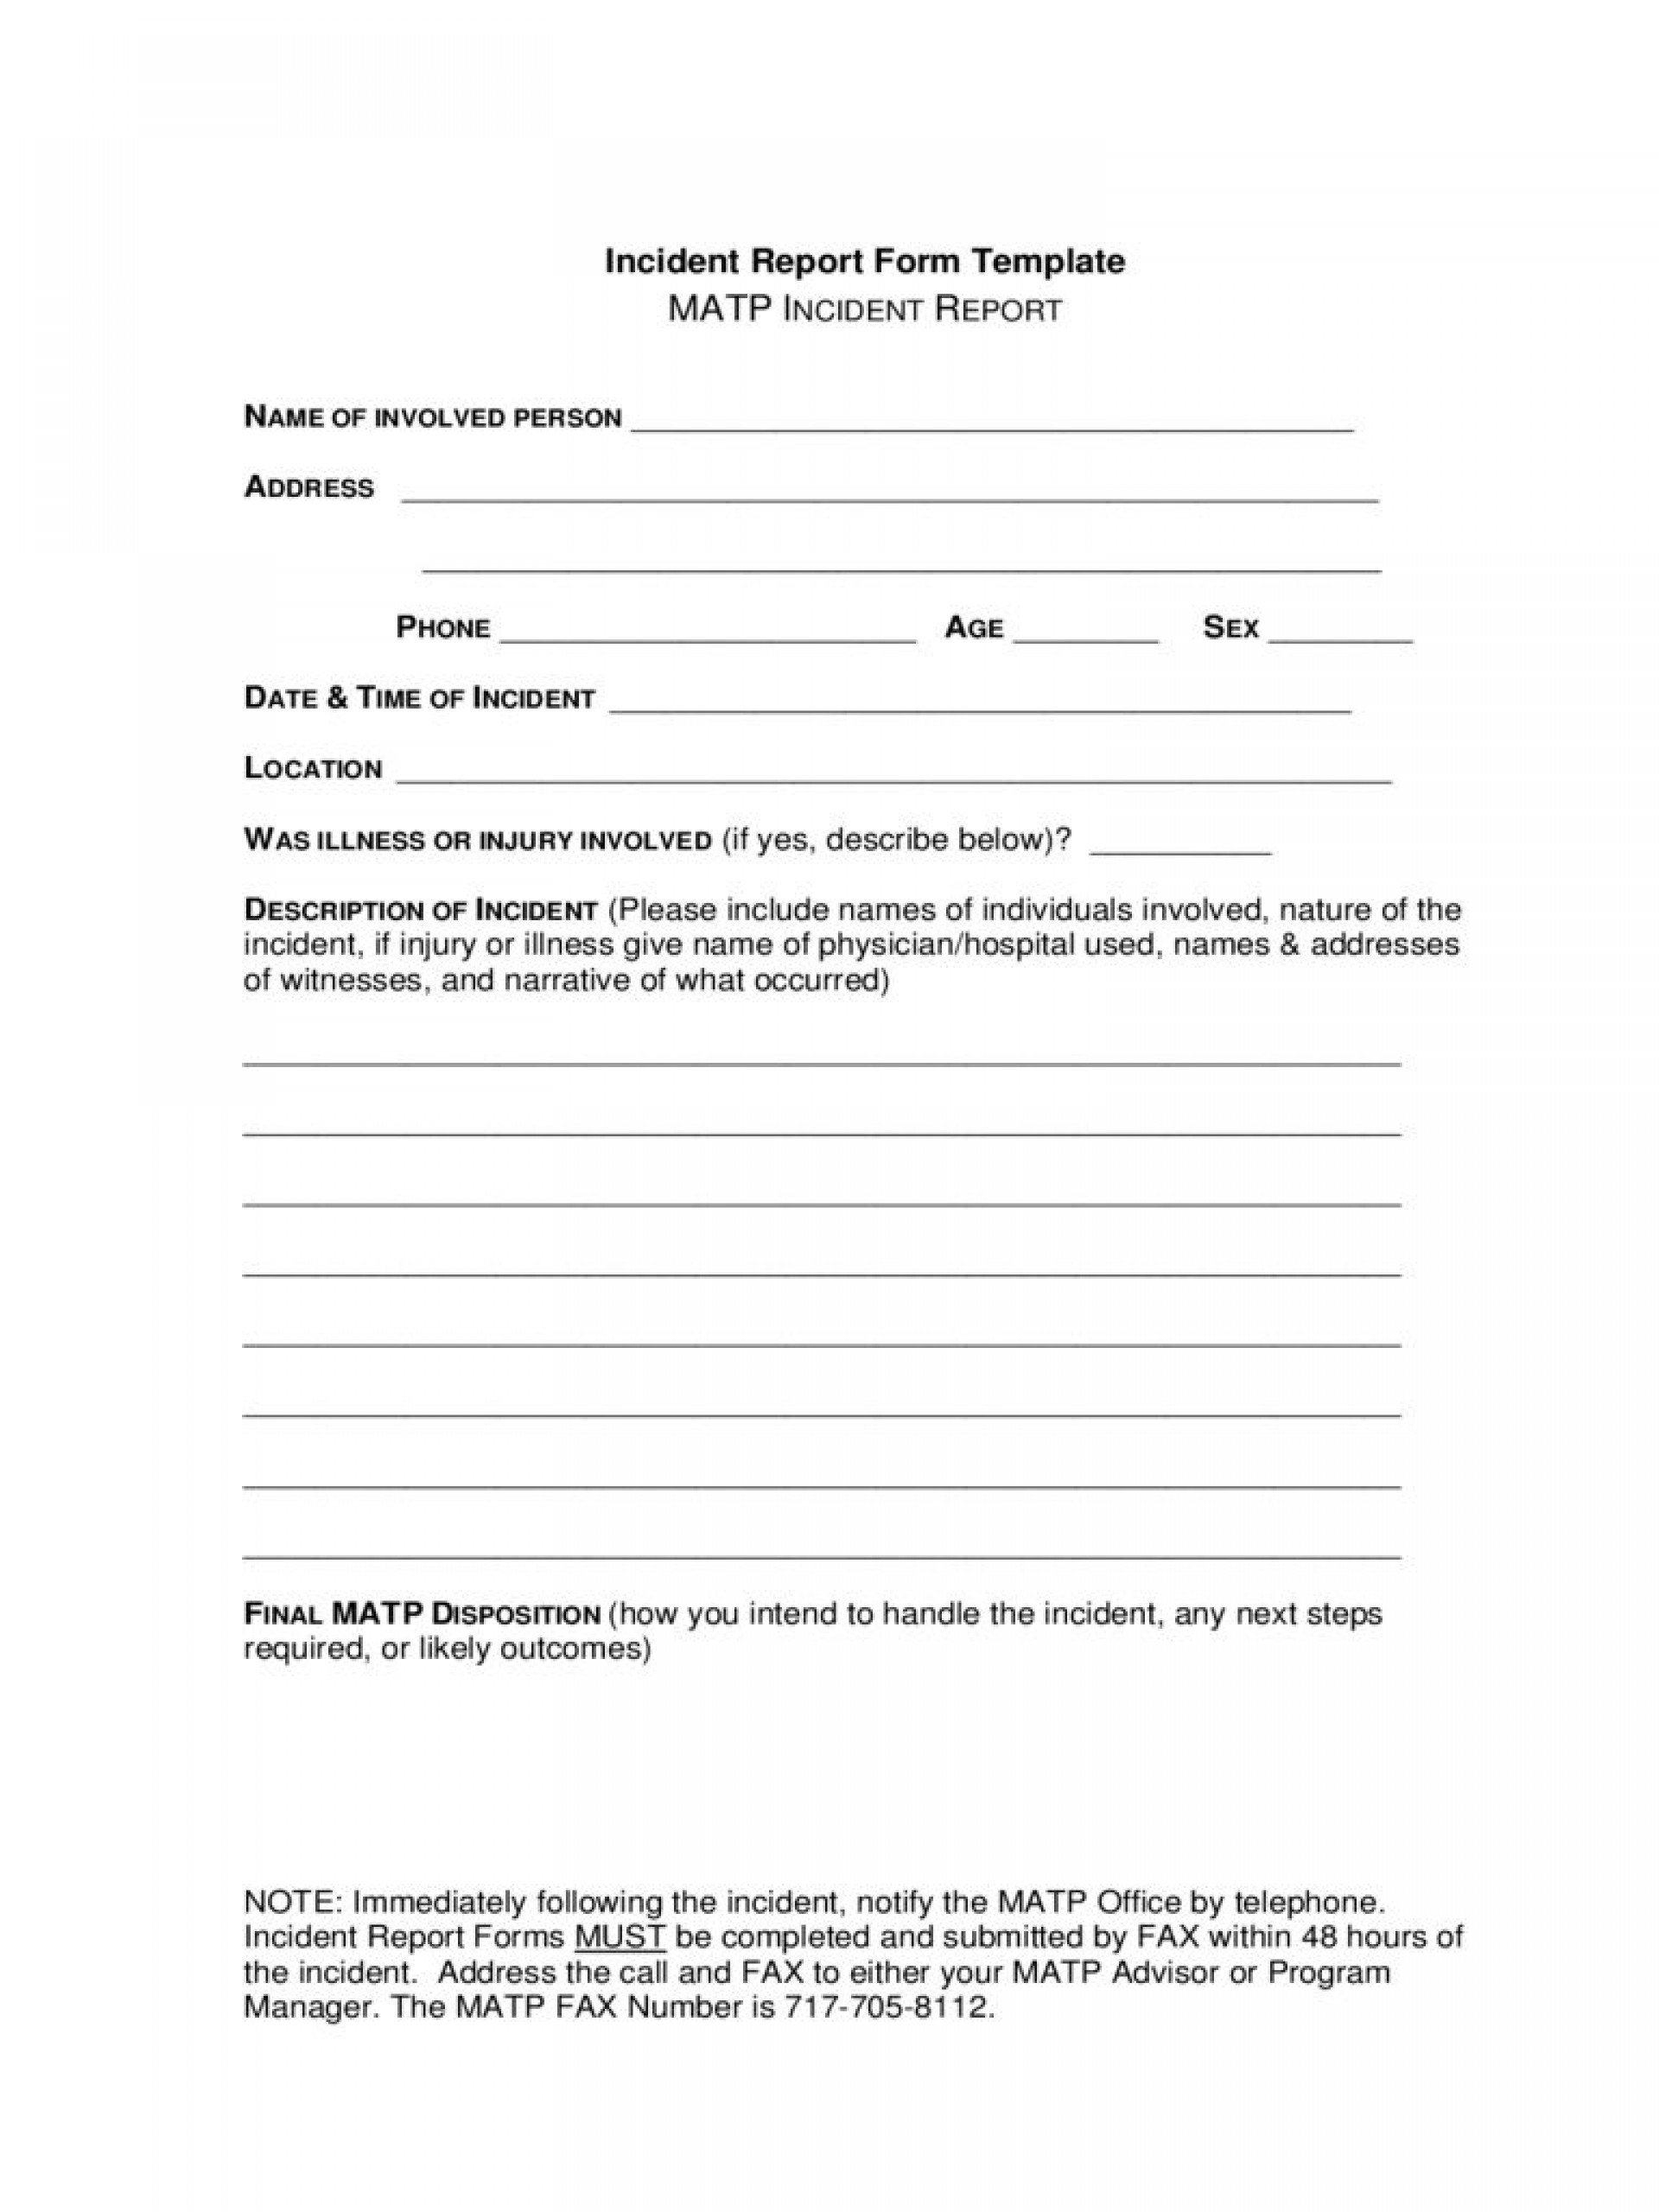 004 Exceptional Accident Report Form Template Inspiration  Free South Africa Pdf1920